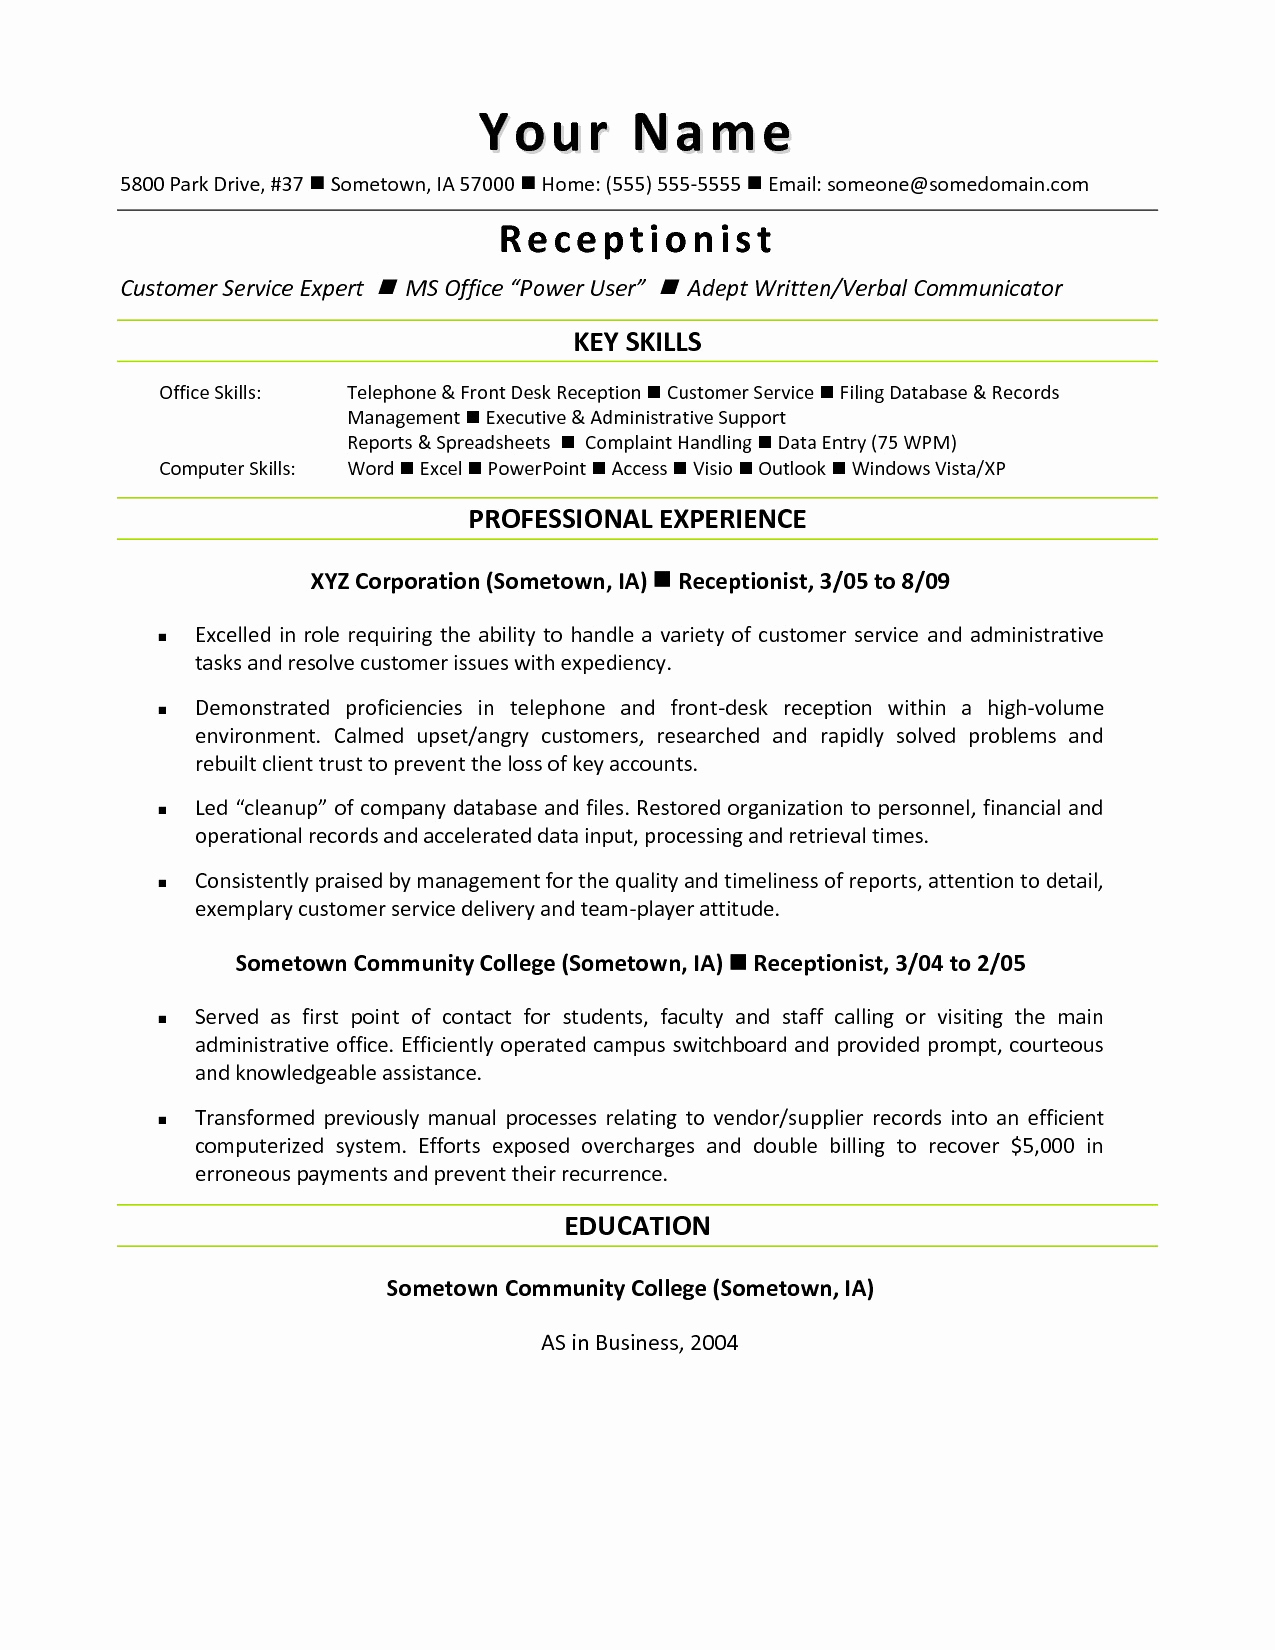 Letter Of Agreement Template Free - 20 Letter Agreement Examples